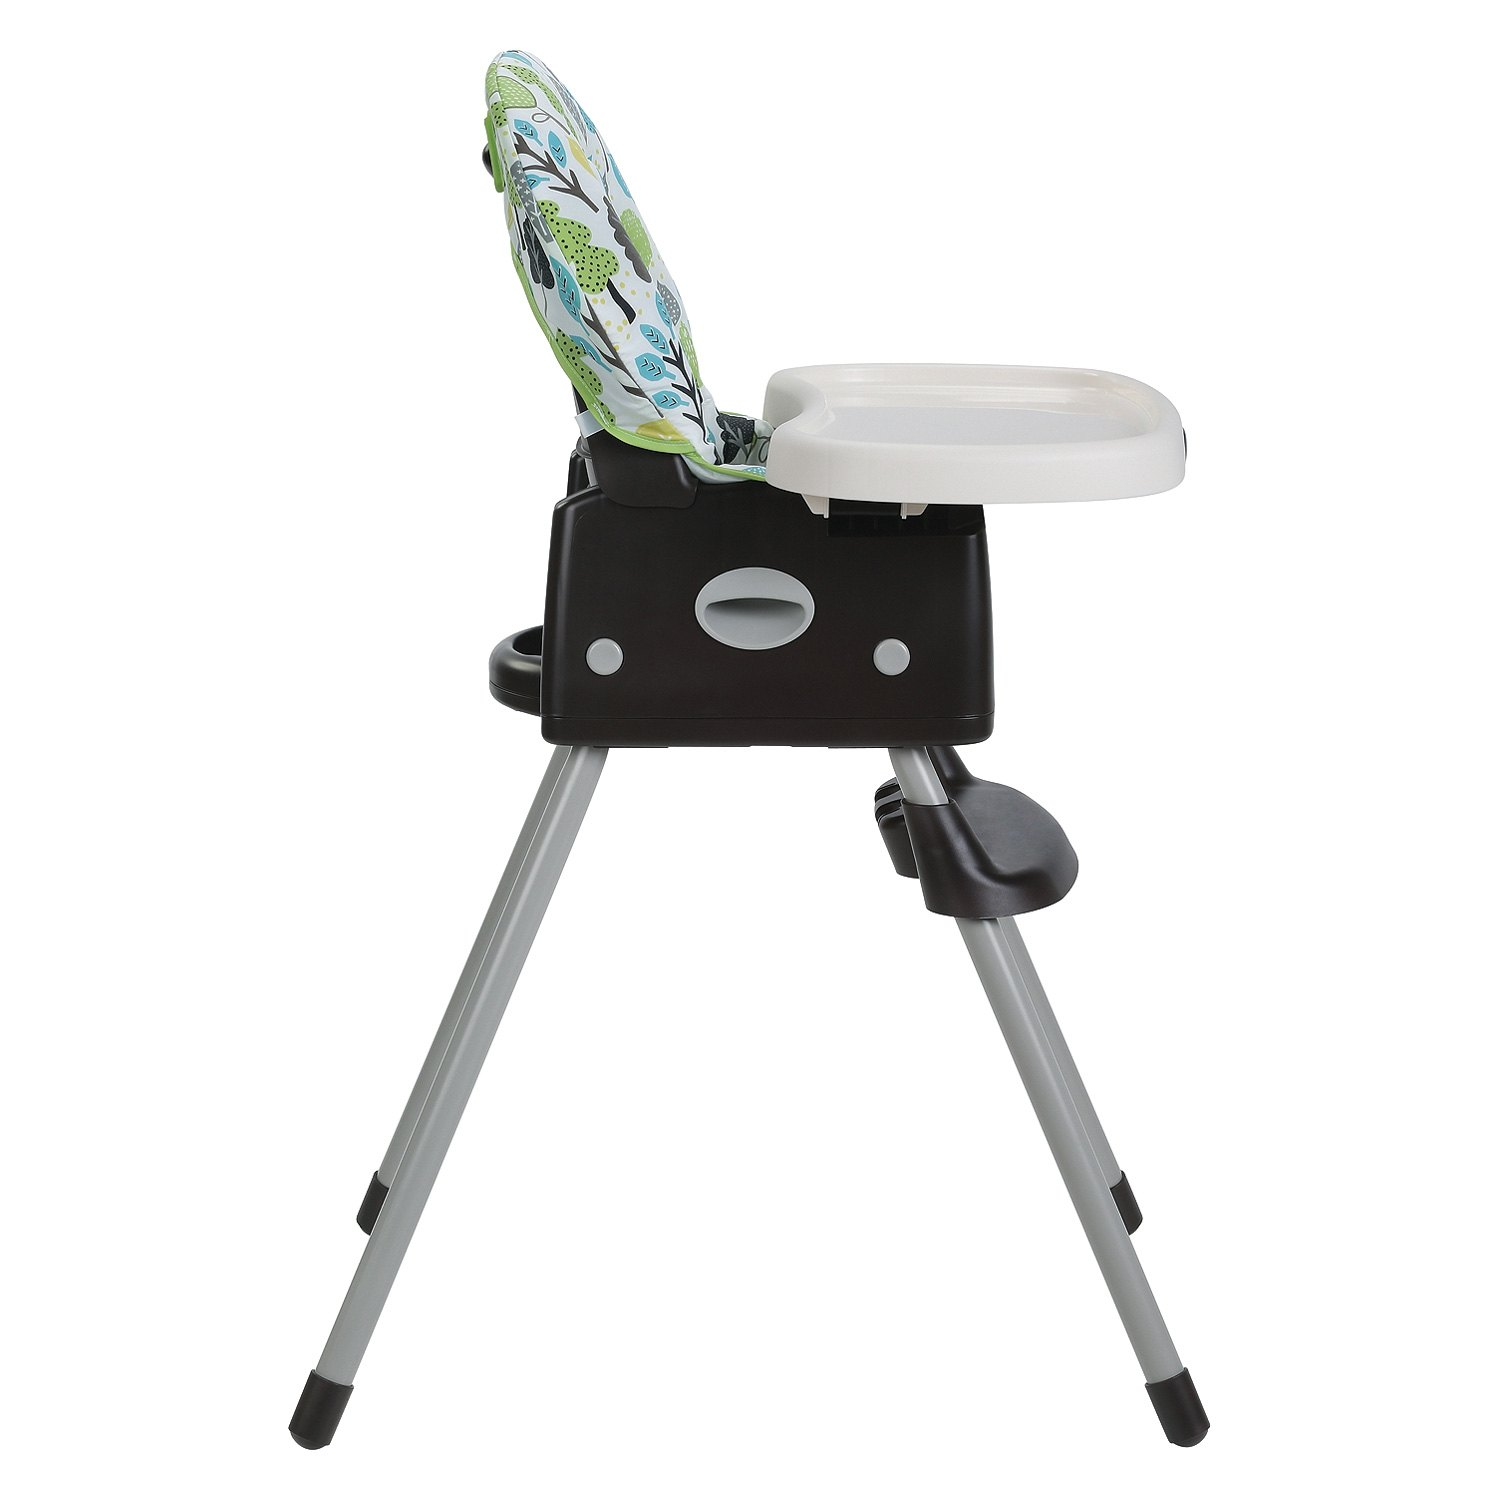 Baby high chair graco -  Highchairgraco Baby Simpleswitch Bear Trail Style